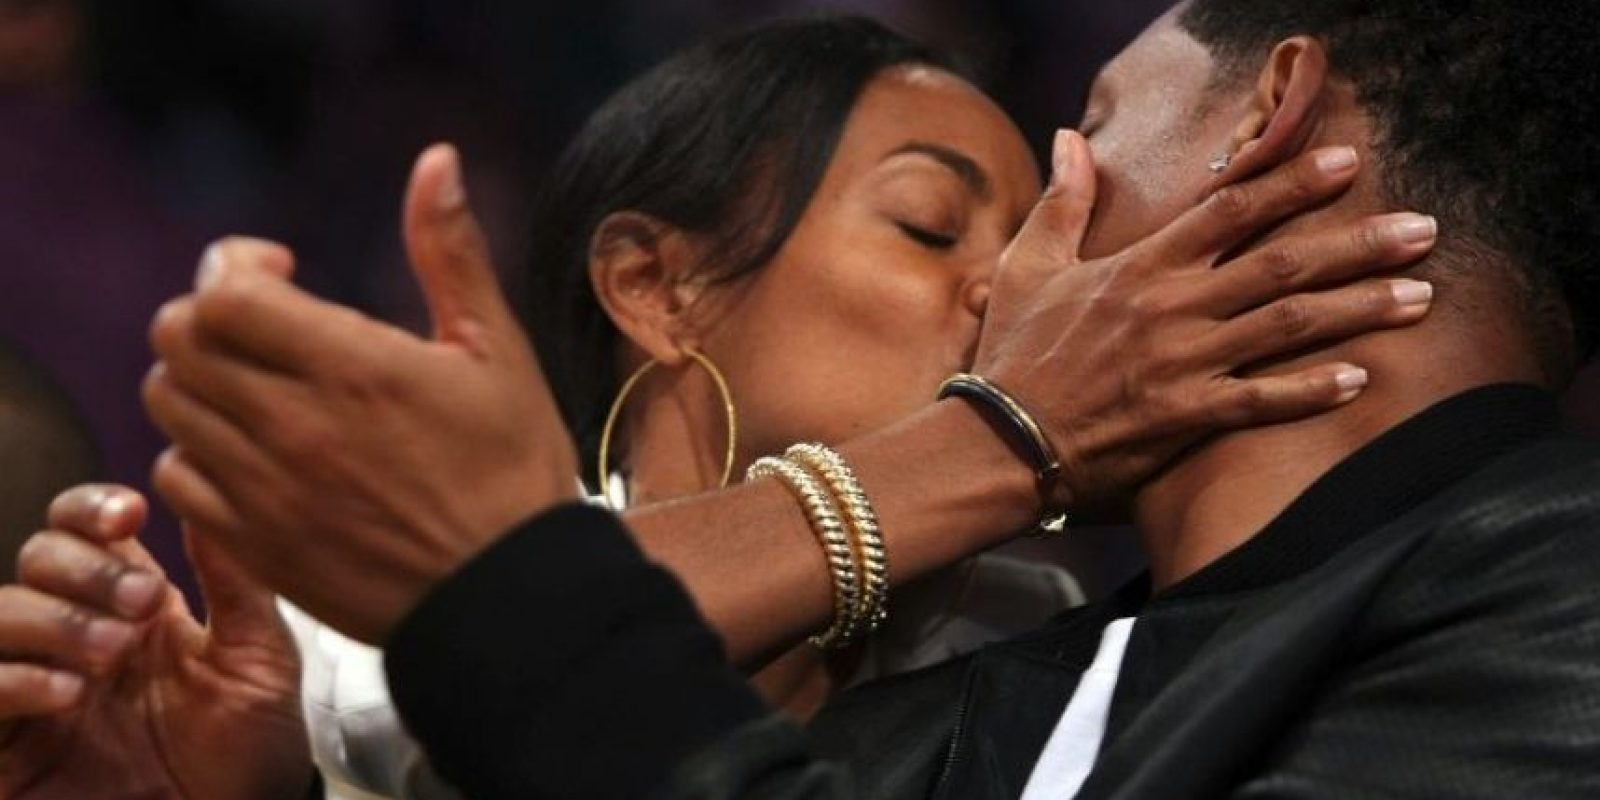 Will Smith y Jada Pinkett Smit Foto: Getty Images